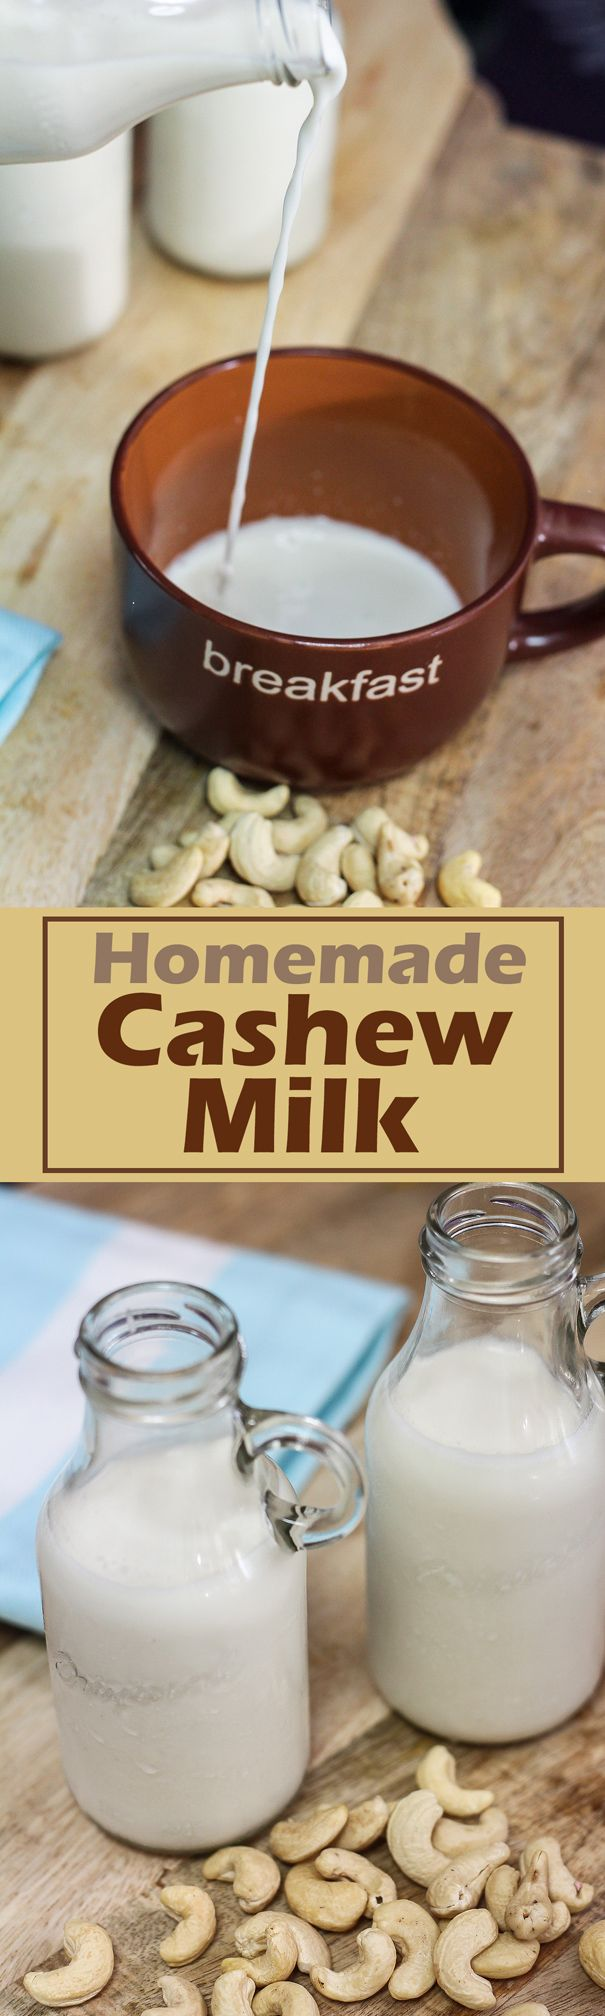 This homemade Cashew Milk was a breeze to make. It is much quicker and easier to prepare than almond milk as it easily blends into a smooth texture.